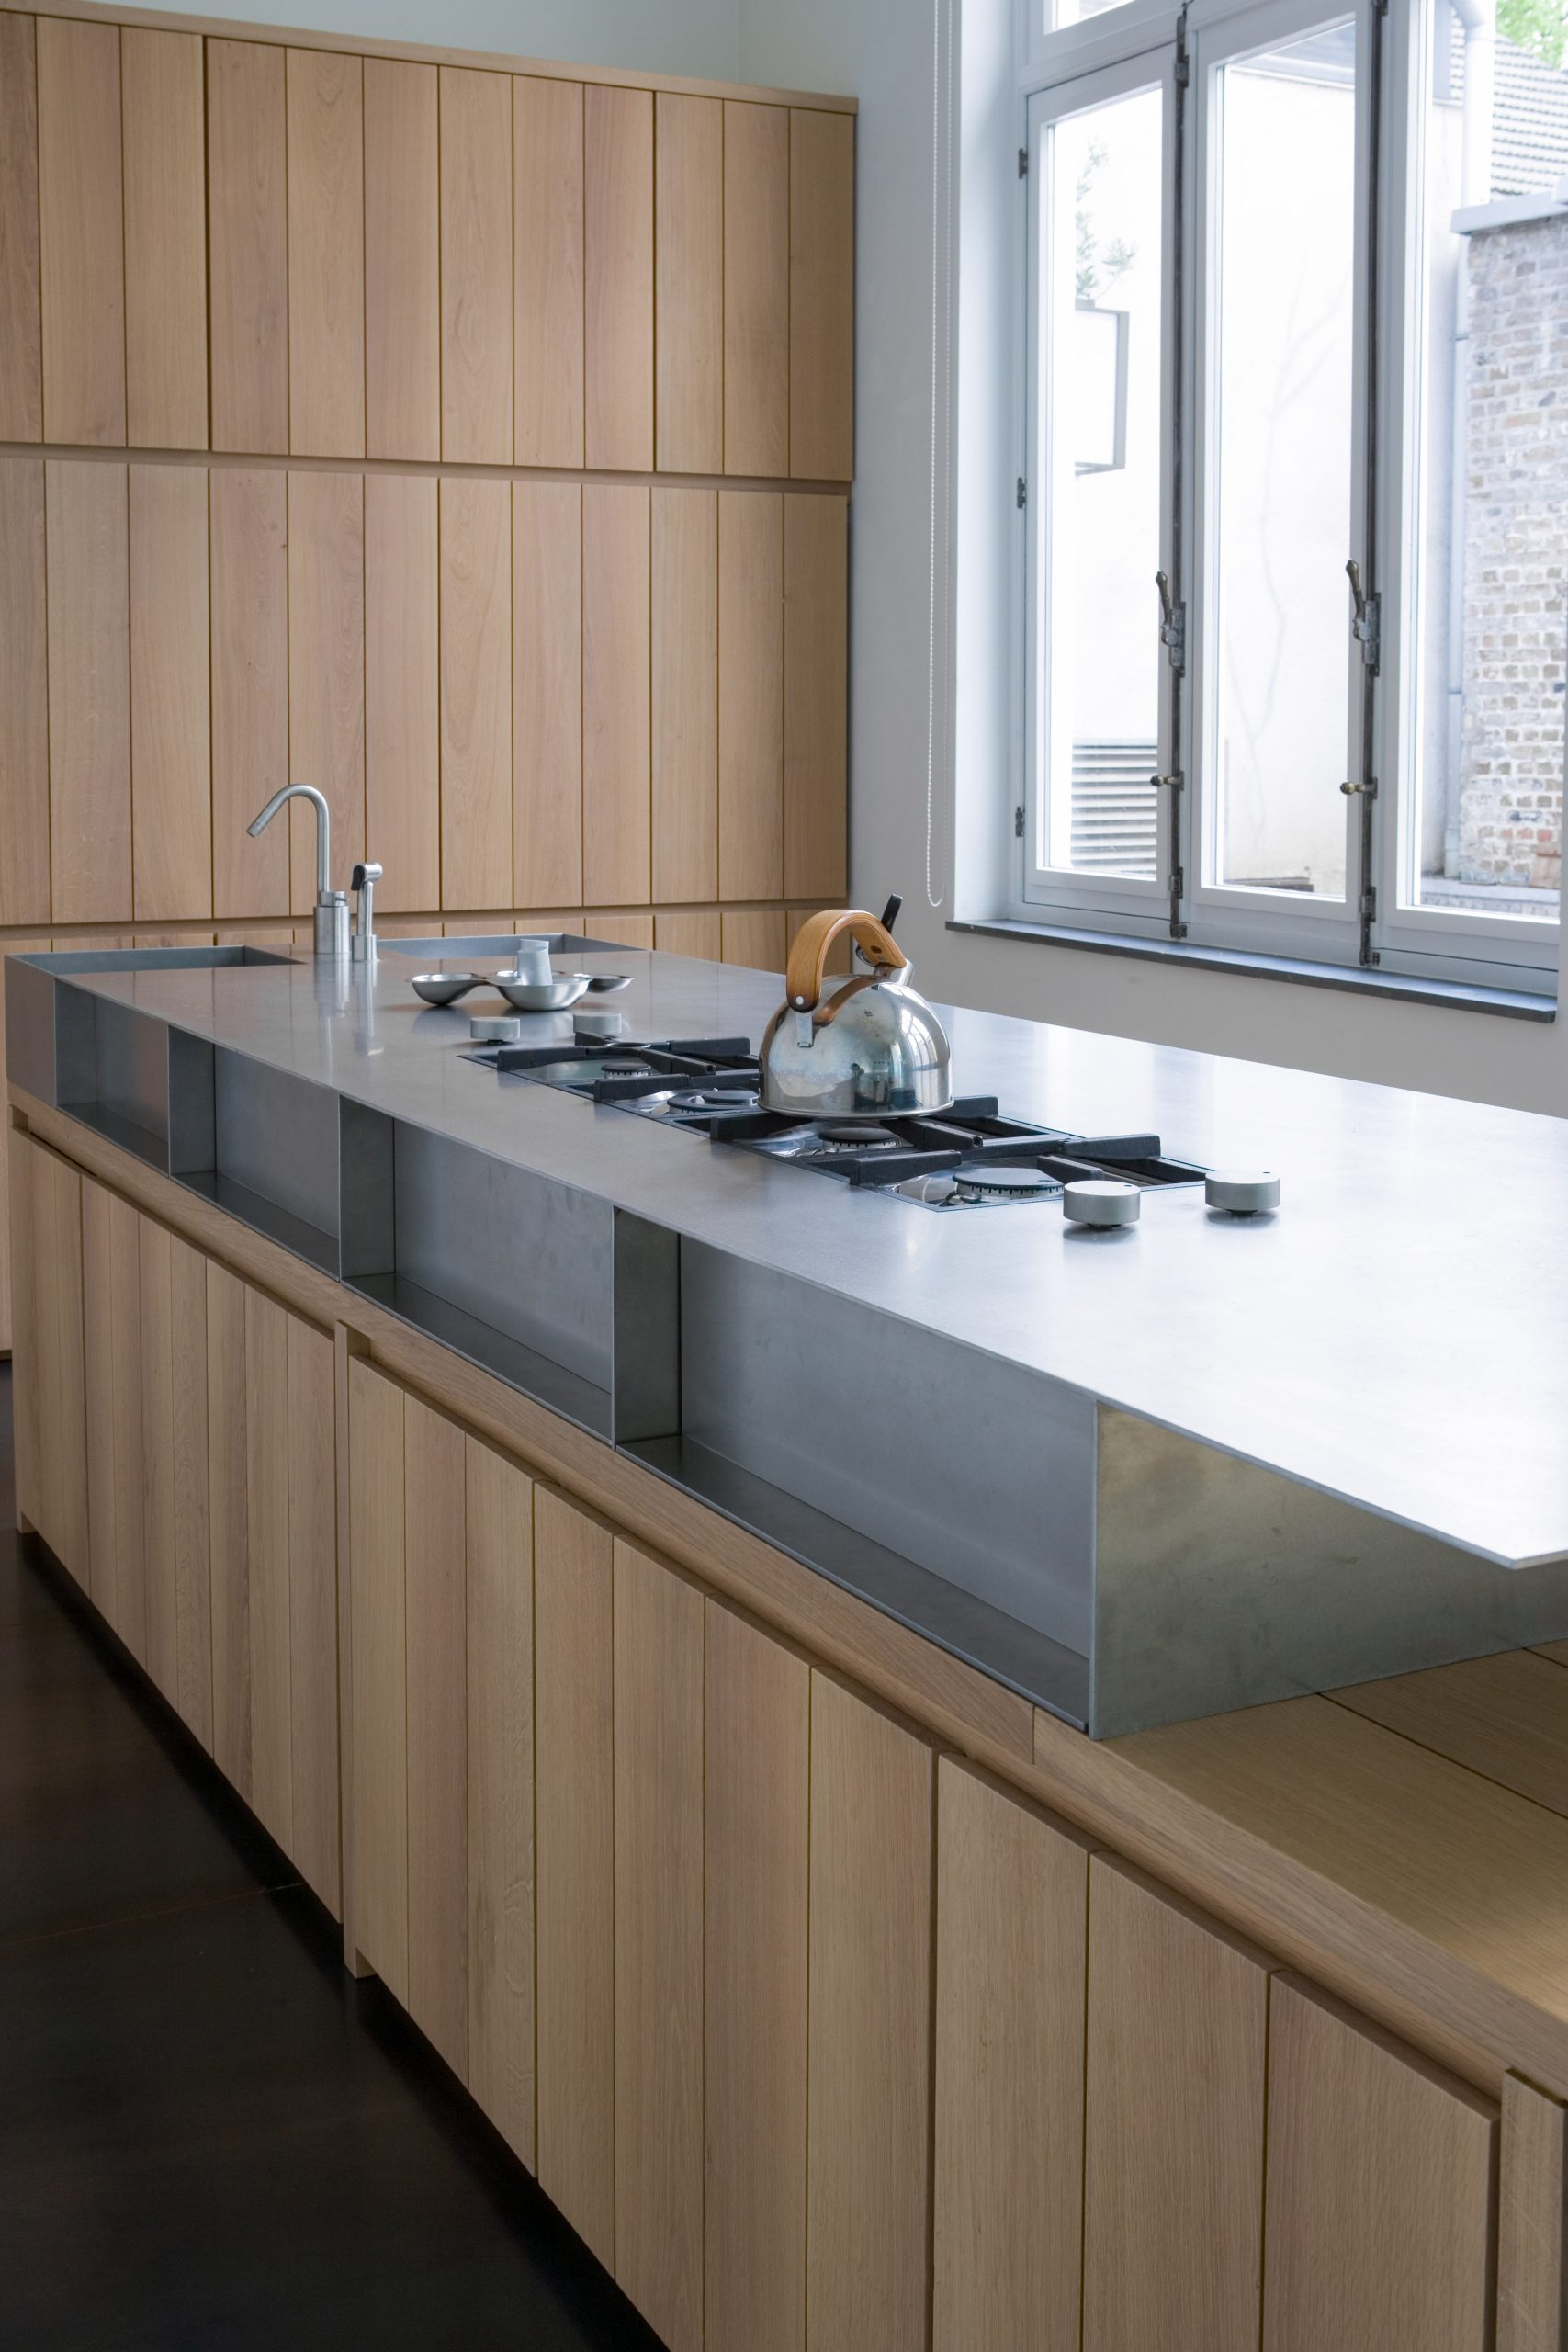 Stainless steel table top in wooden kitchen